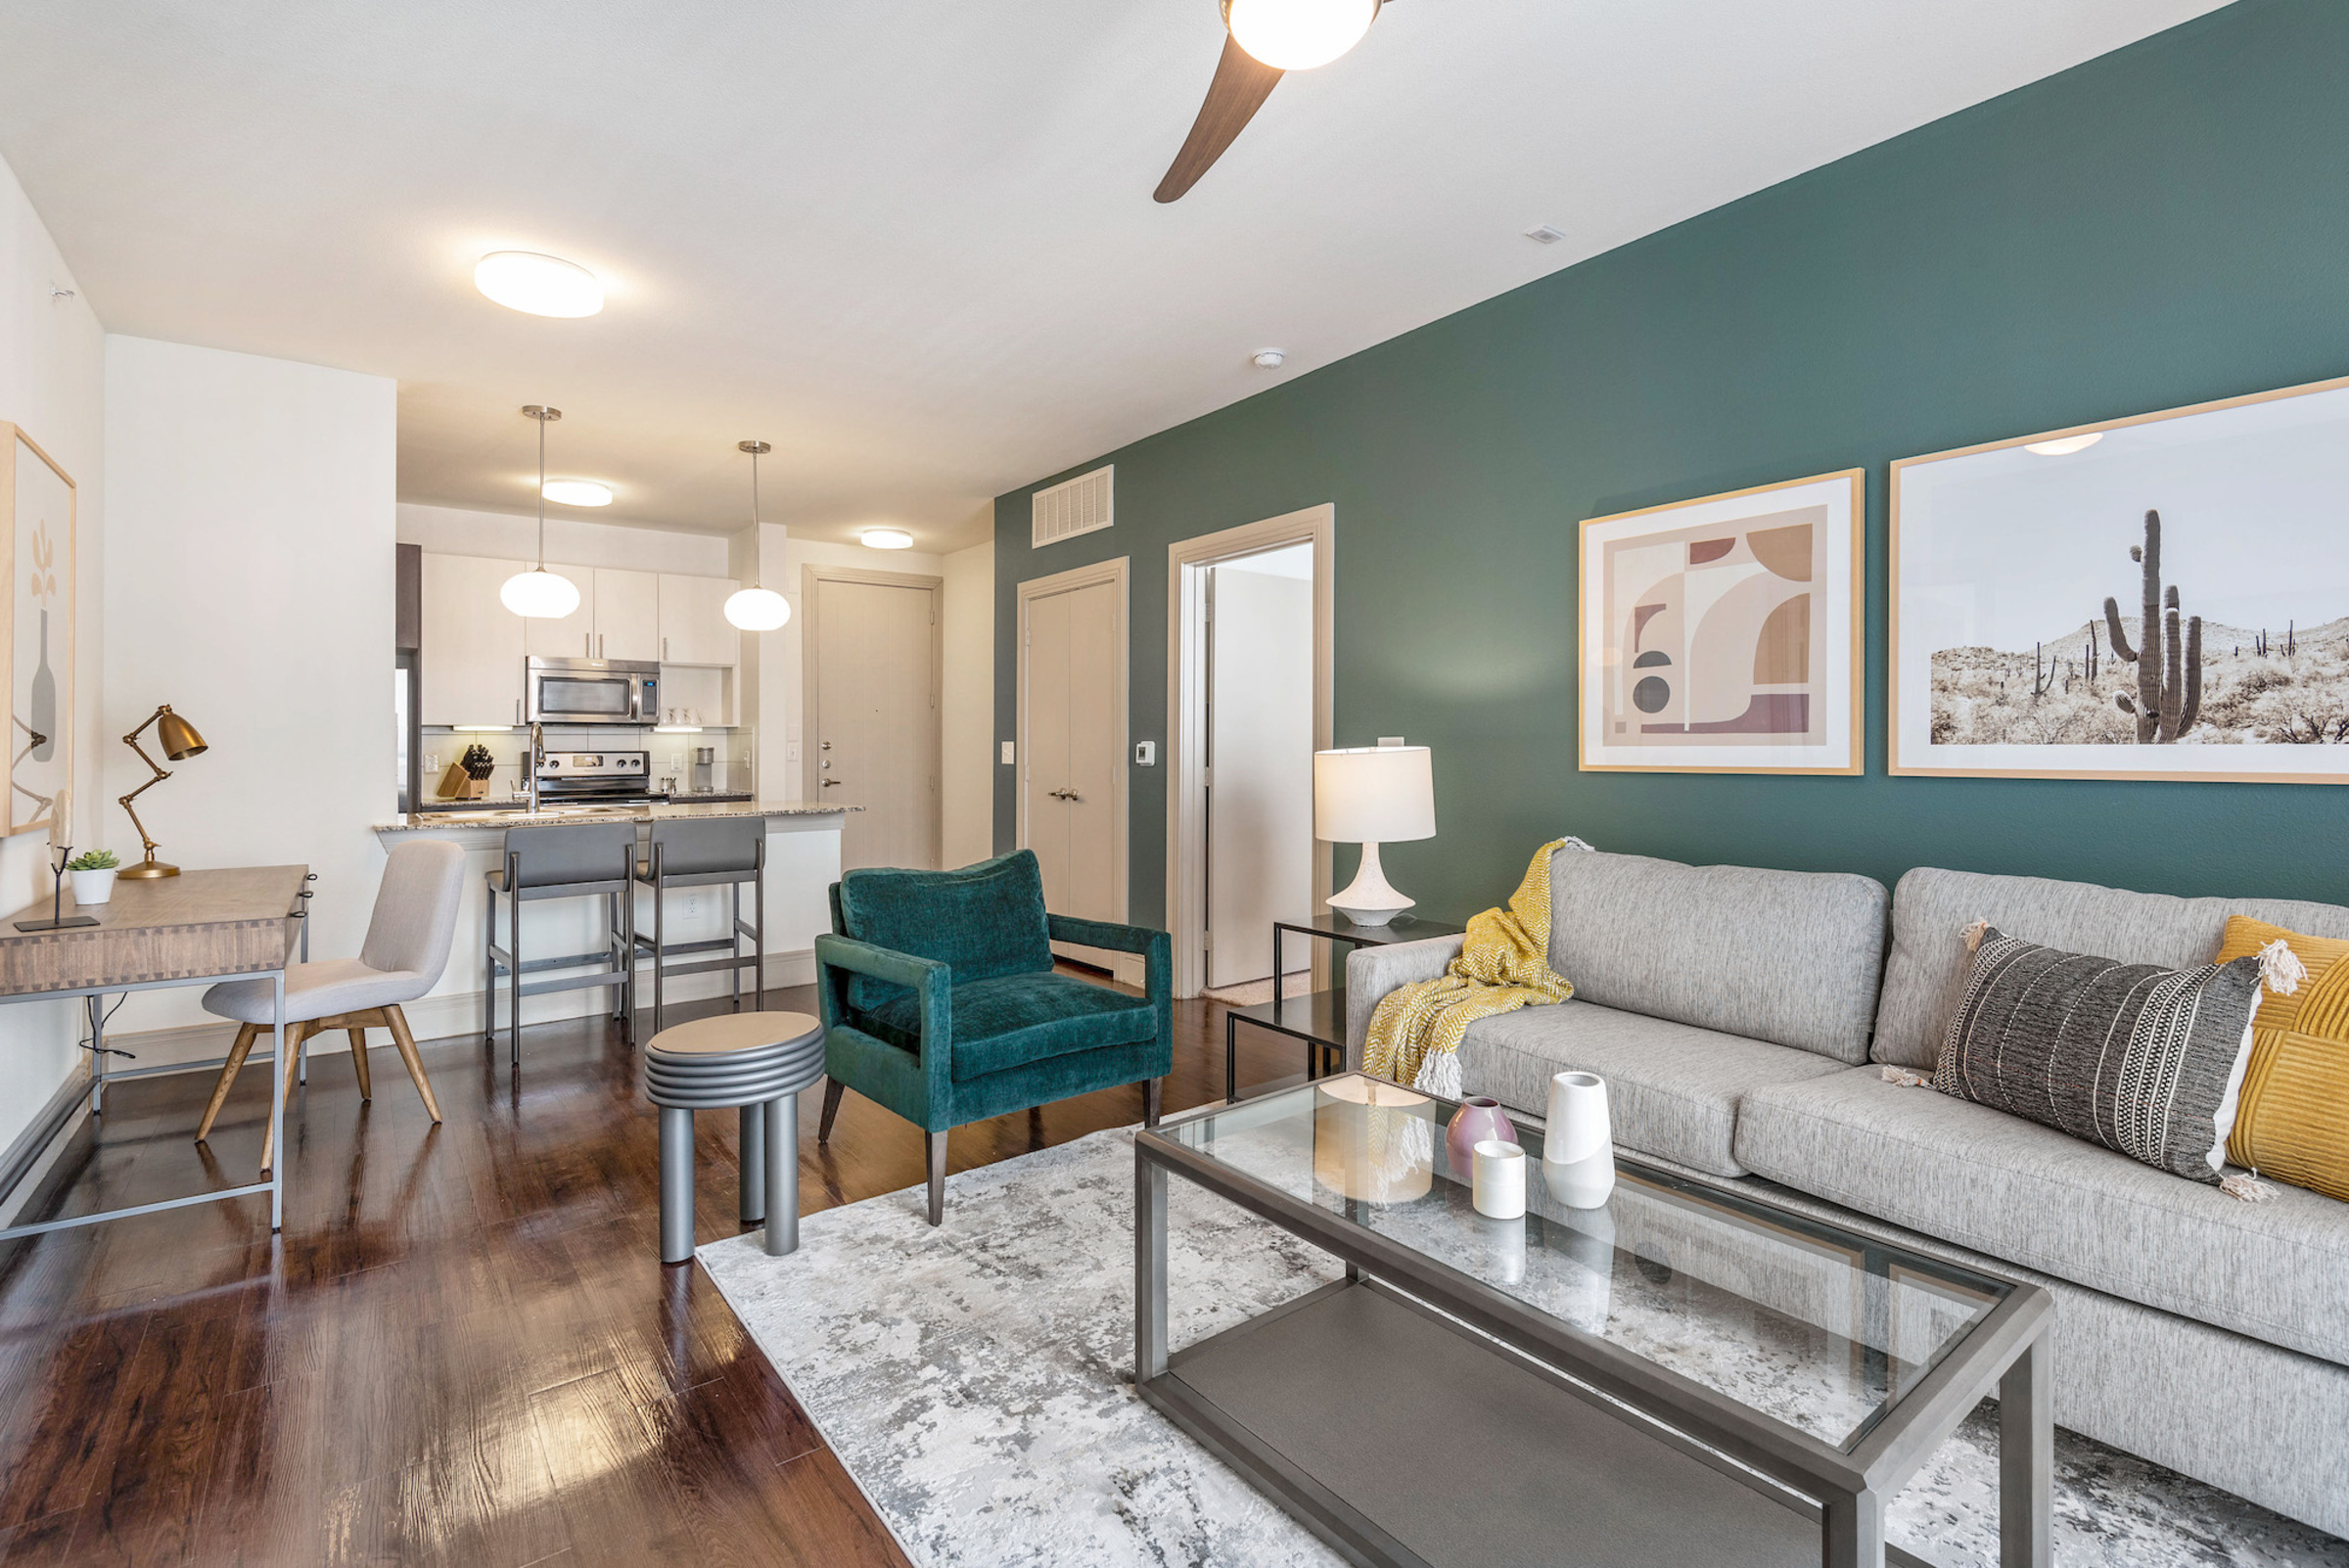 The Carrington At Schilling Farms for rent